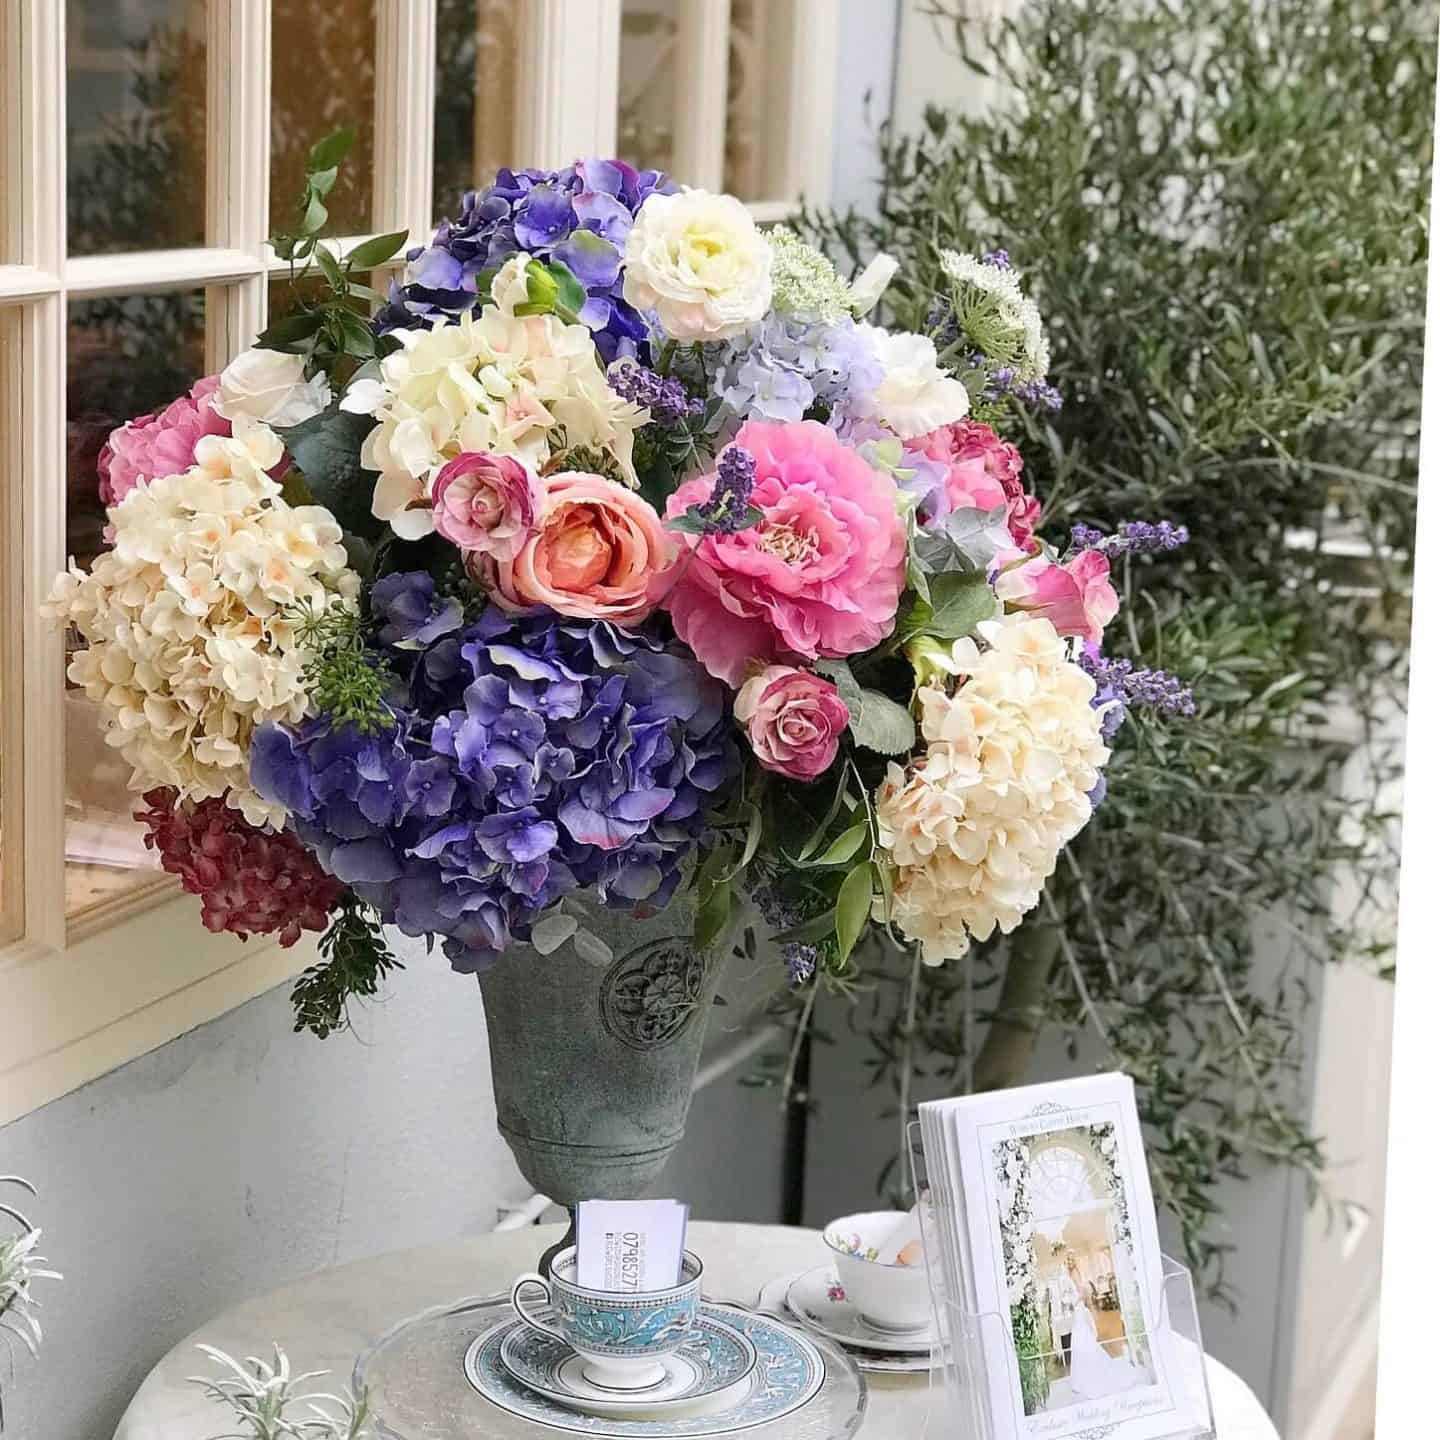 Pastel flowers in an urn